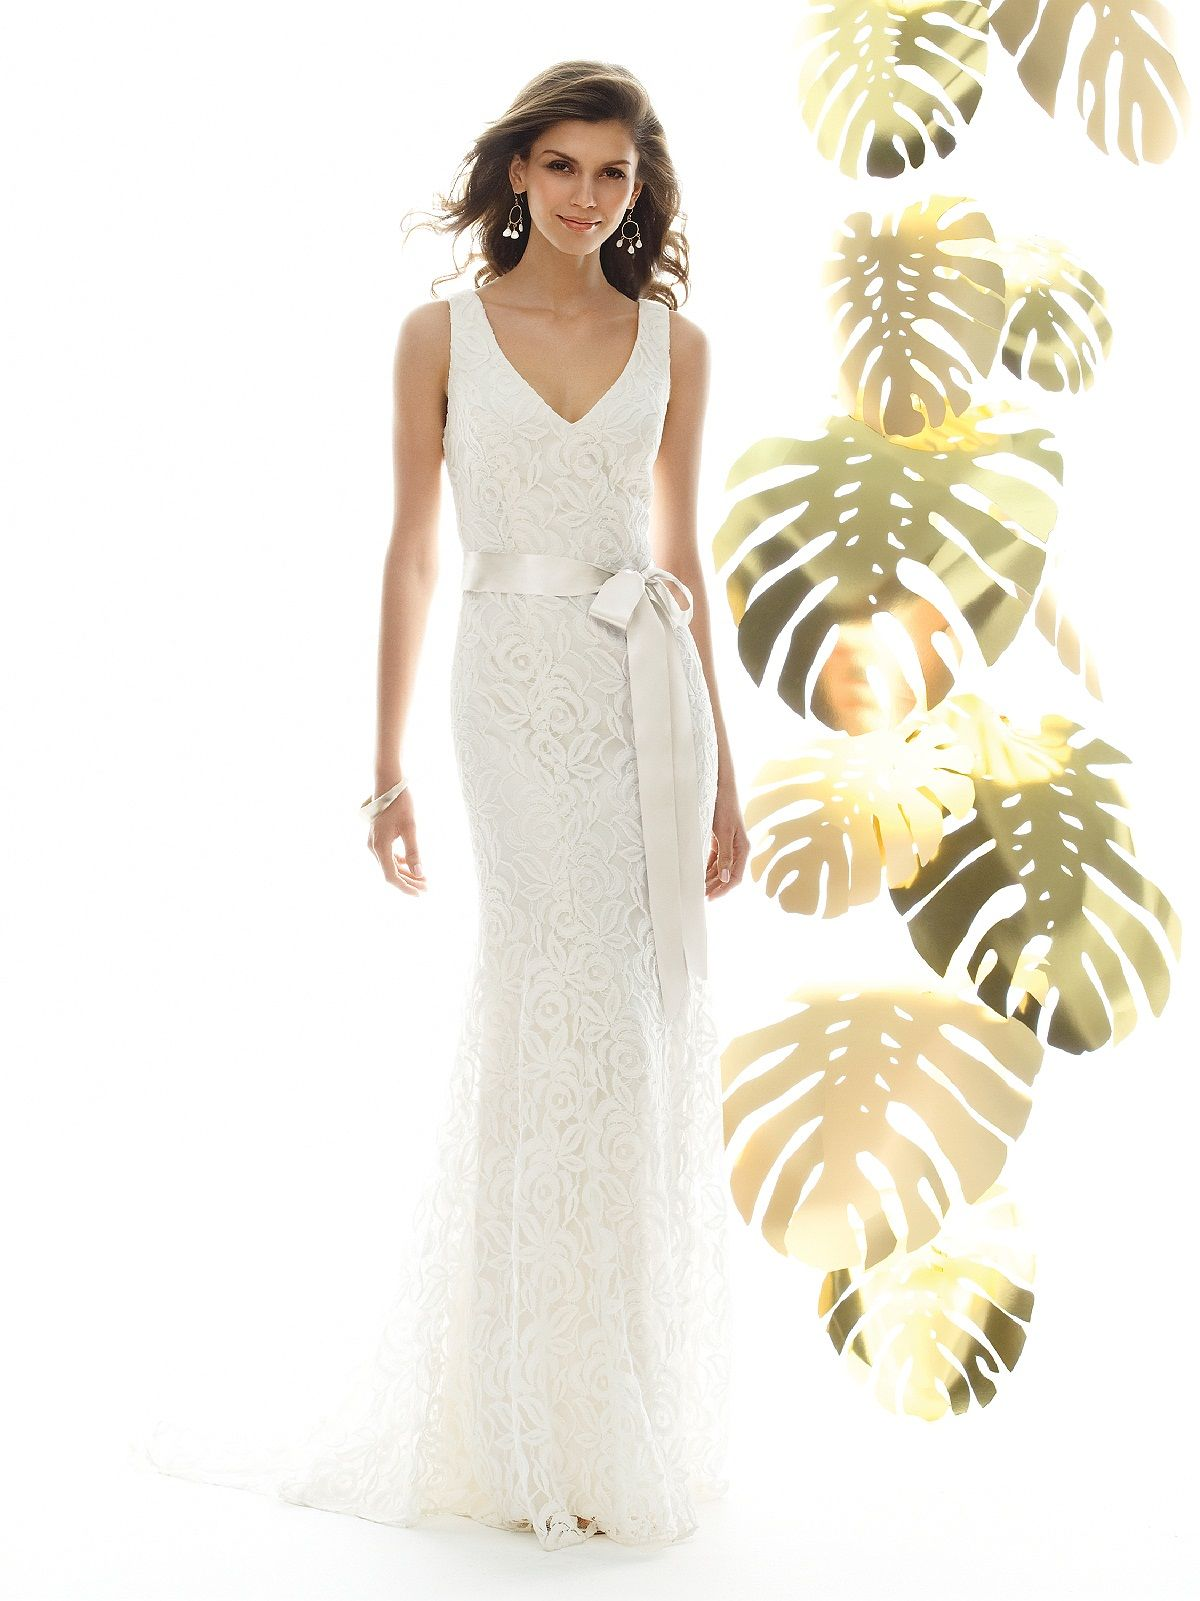 The dessy group wedding ideas pinterest wedding dress lace spring 2011 dessy bridal gown style 1018 from the sandals collection full length v neck lace beach wedding dress has sweep train and matching ribbon belt ombrellifo Gallery